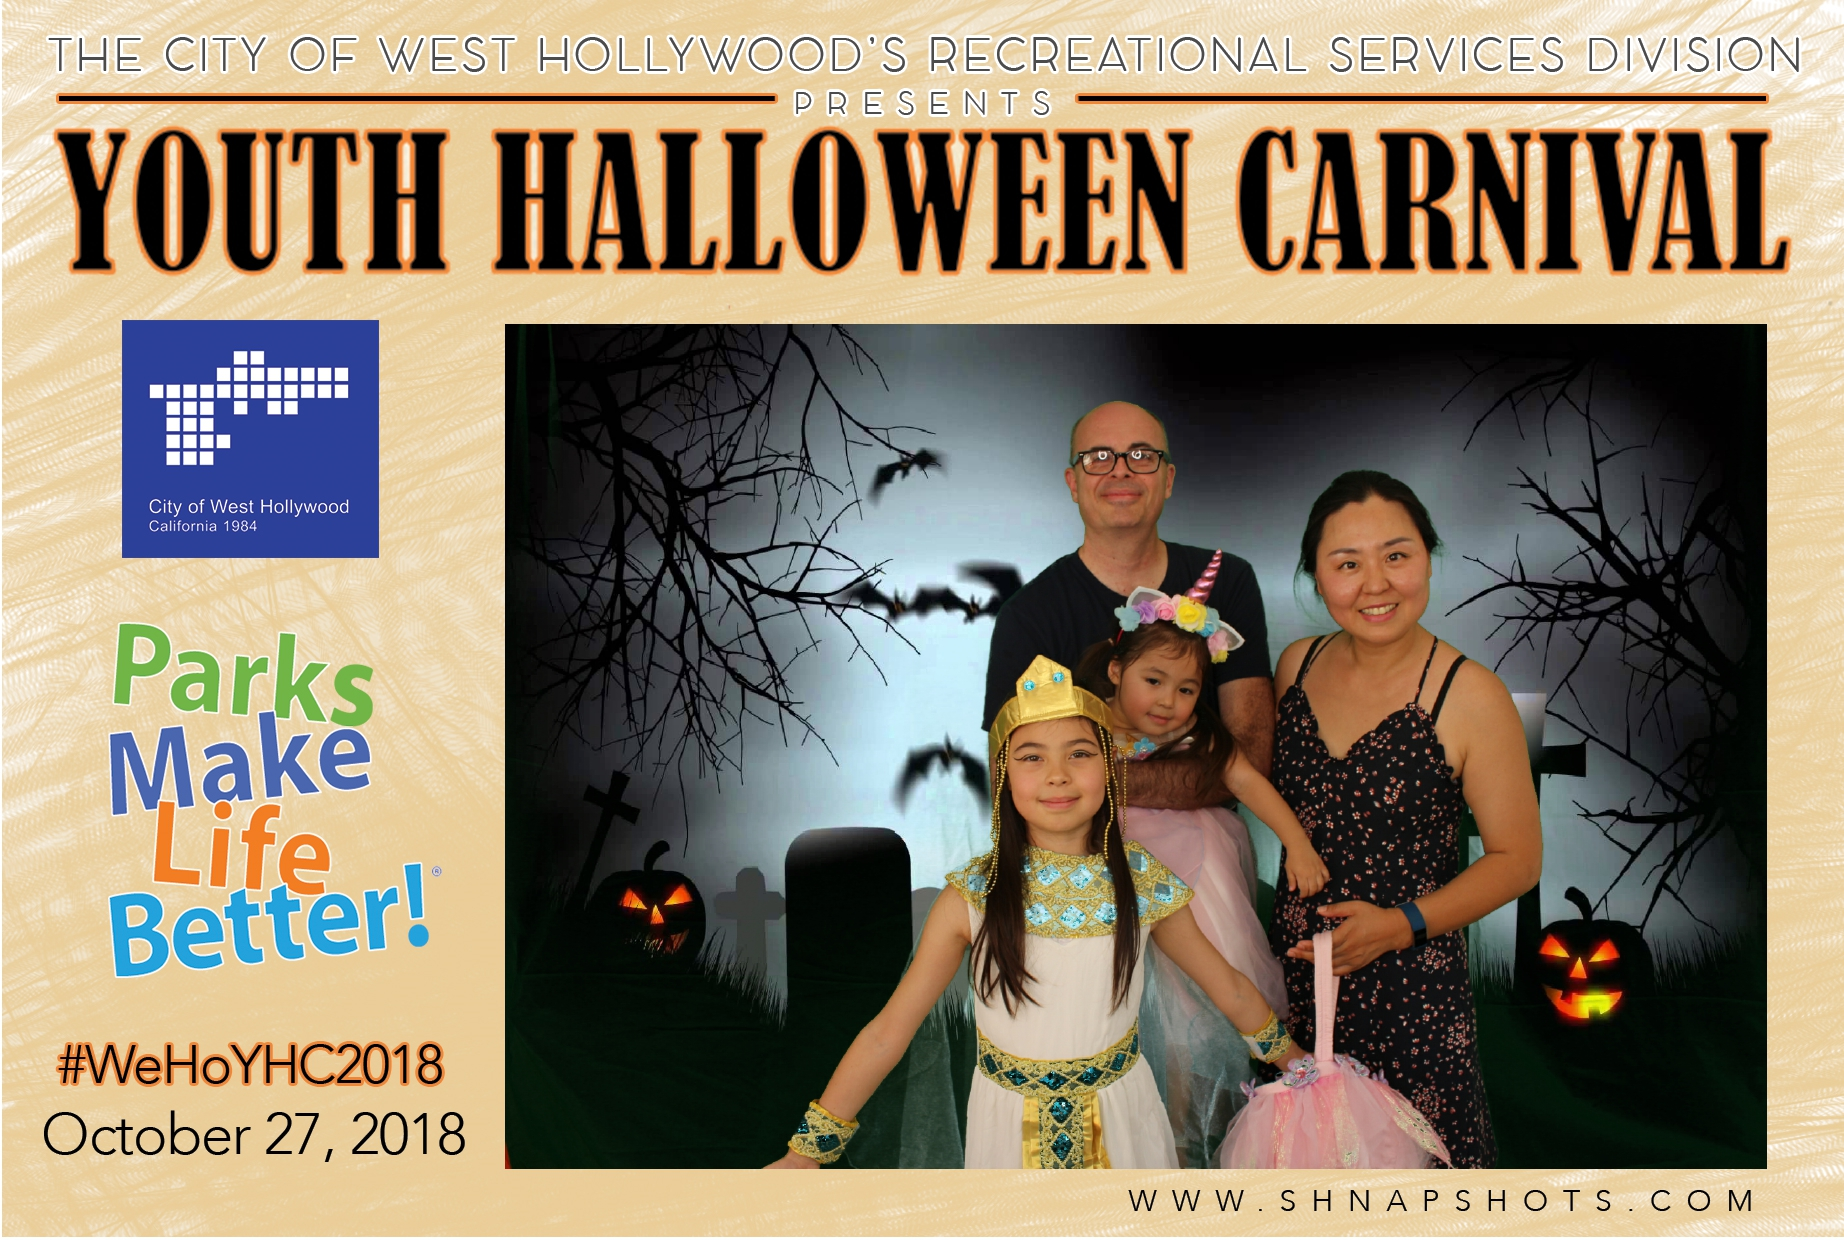 Youth Halloween Carnival: City of WeHo